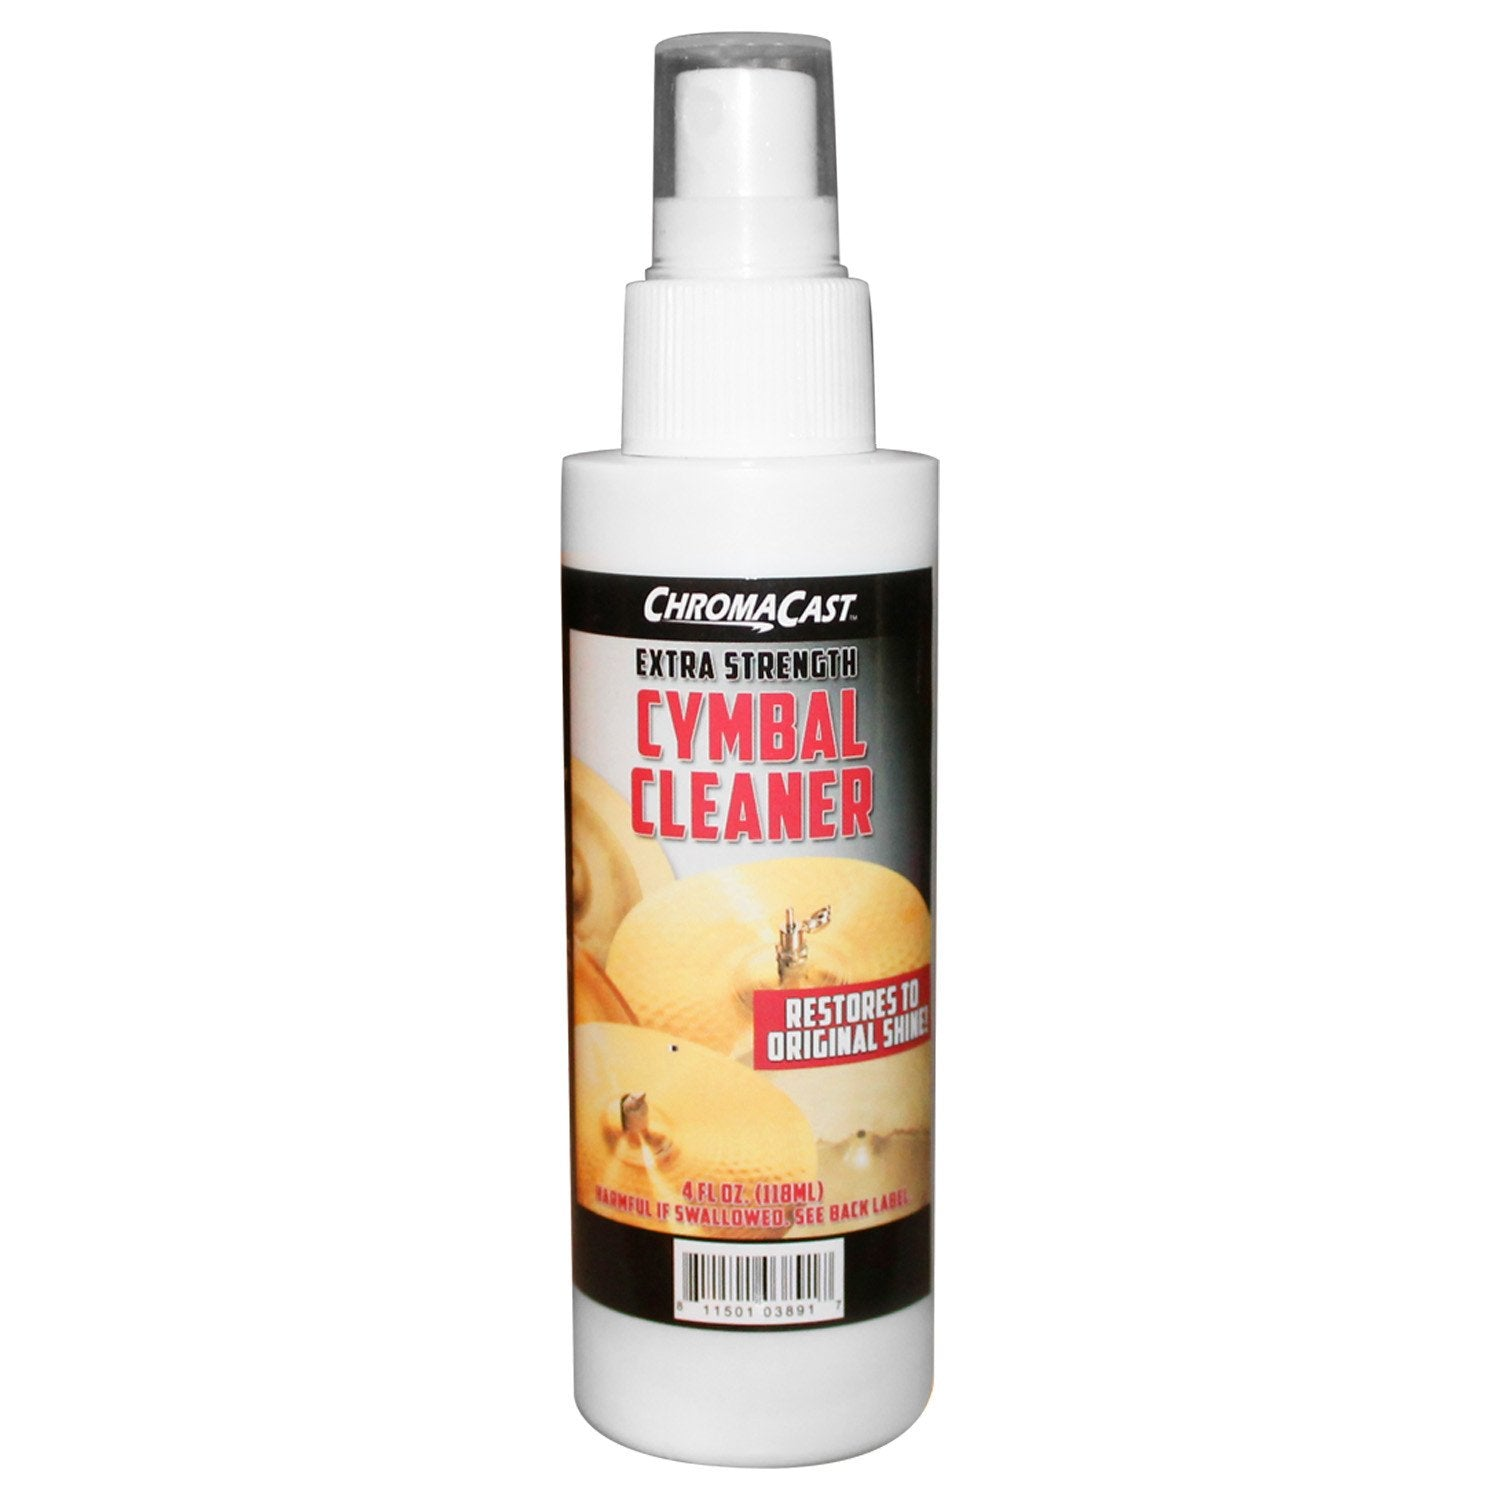 5c014f9a6df2 ChromaCast Cymbal Cleaner Kit